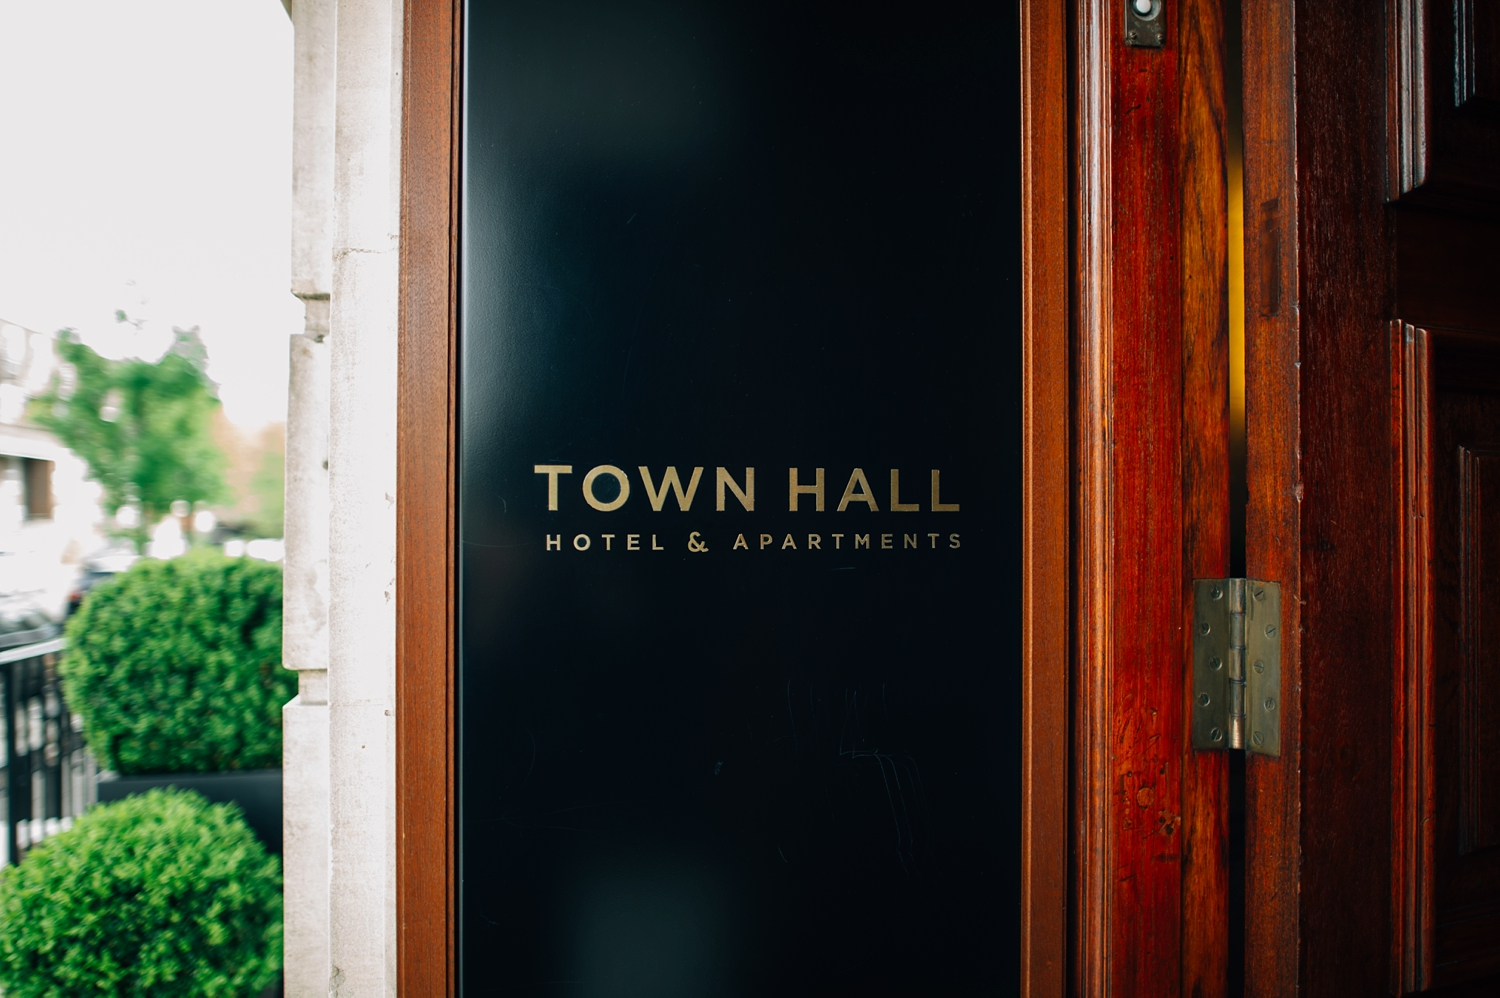 0029-lisa-devine-alternative-wedding-photography-london-hackney-dalston-london-photography-townhall-hotel.JPG